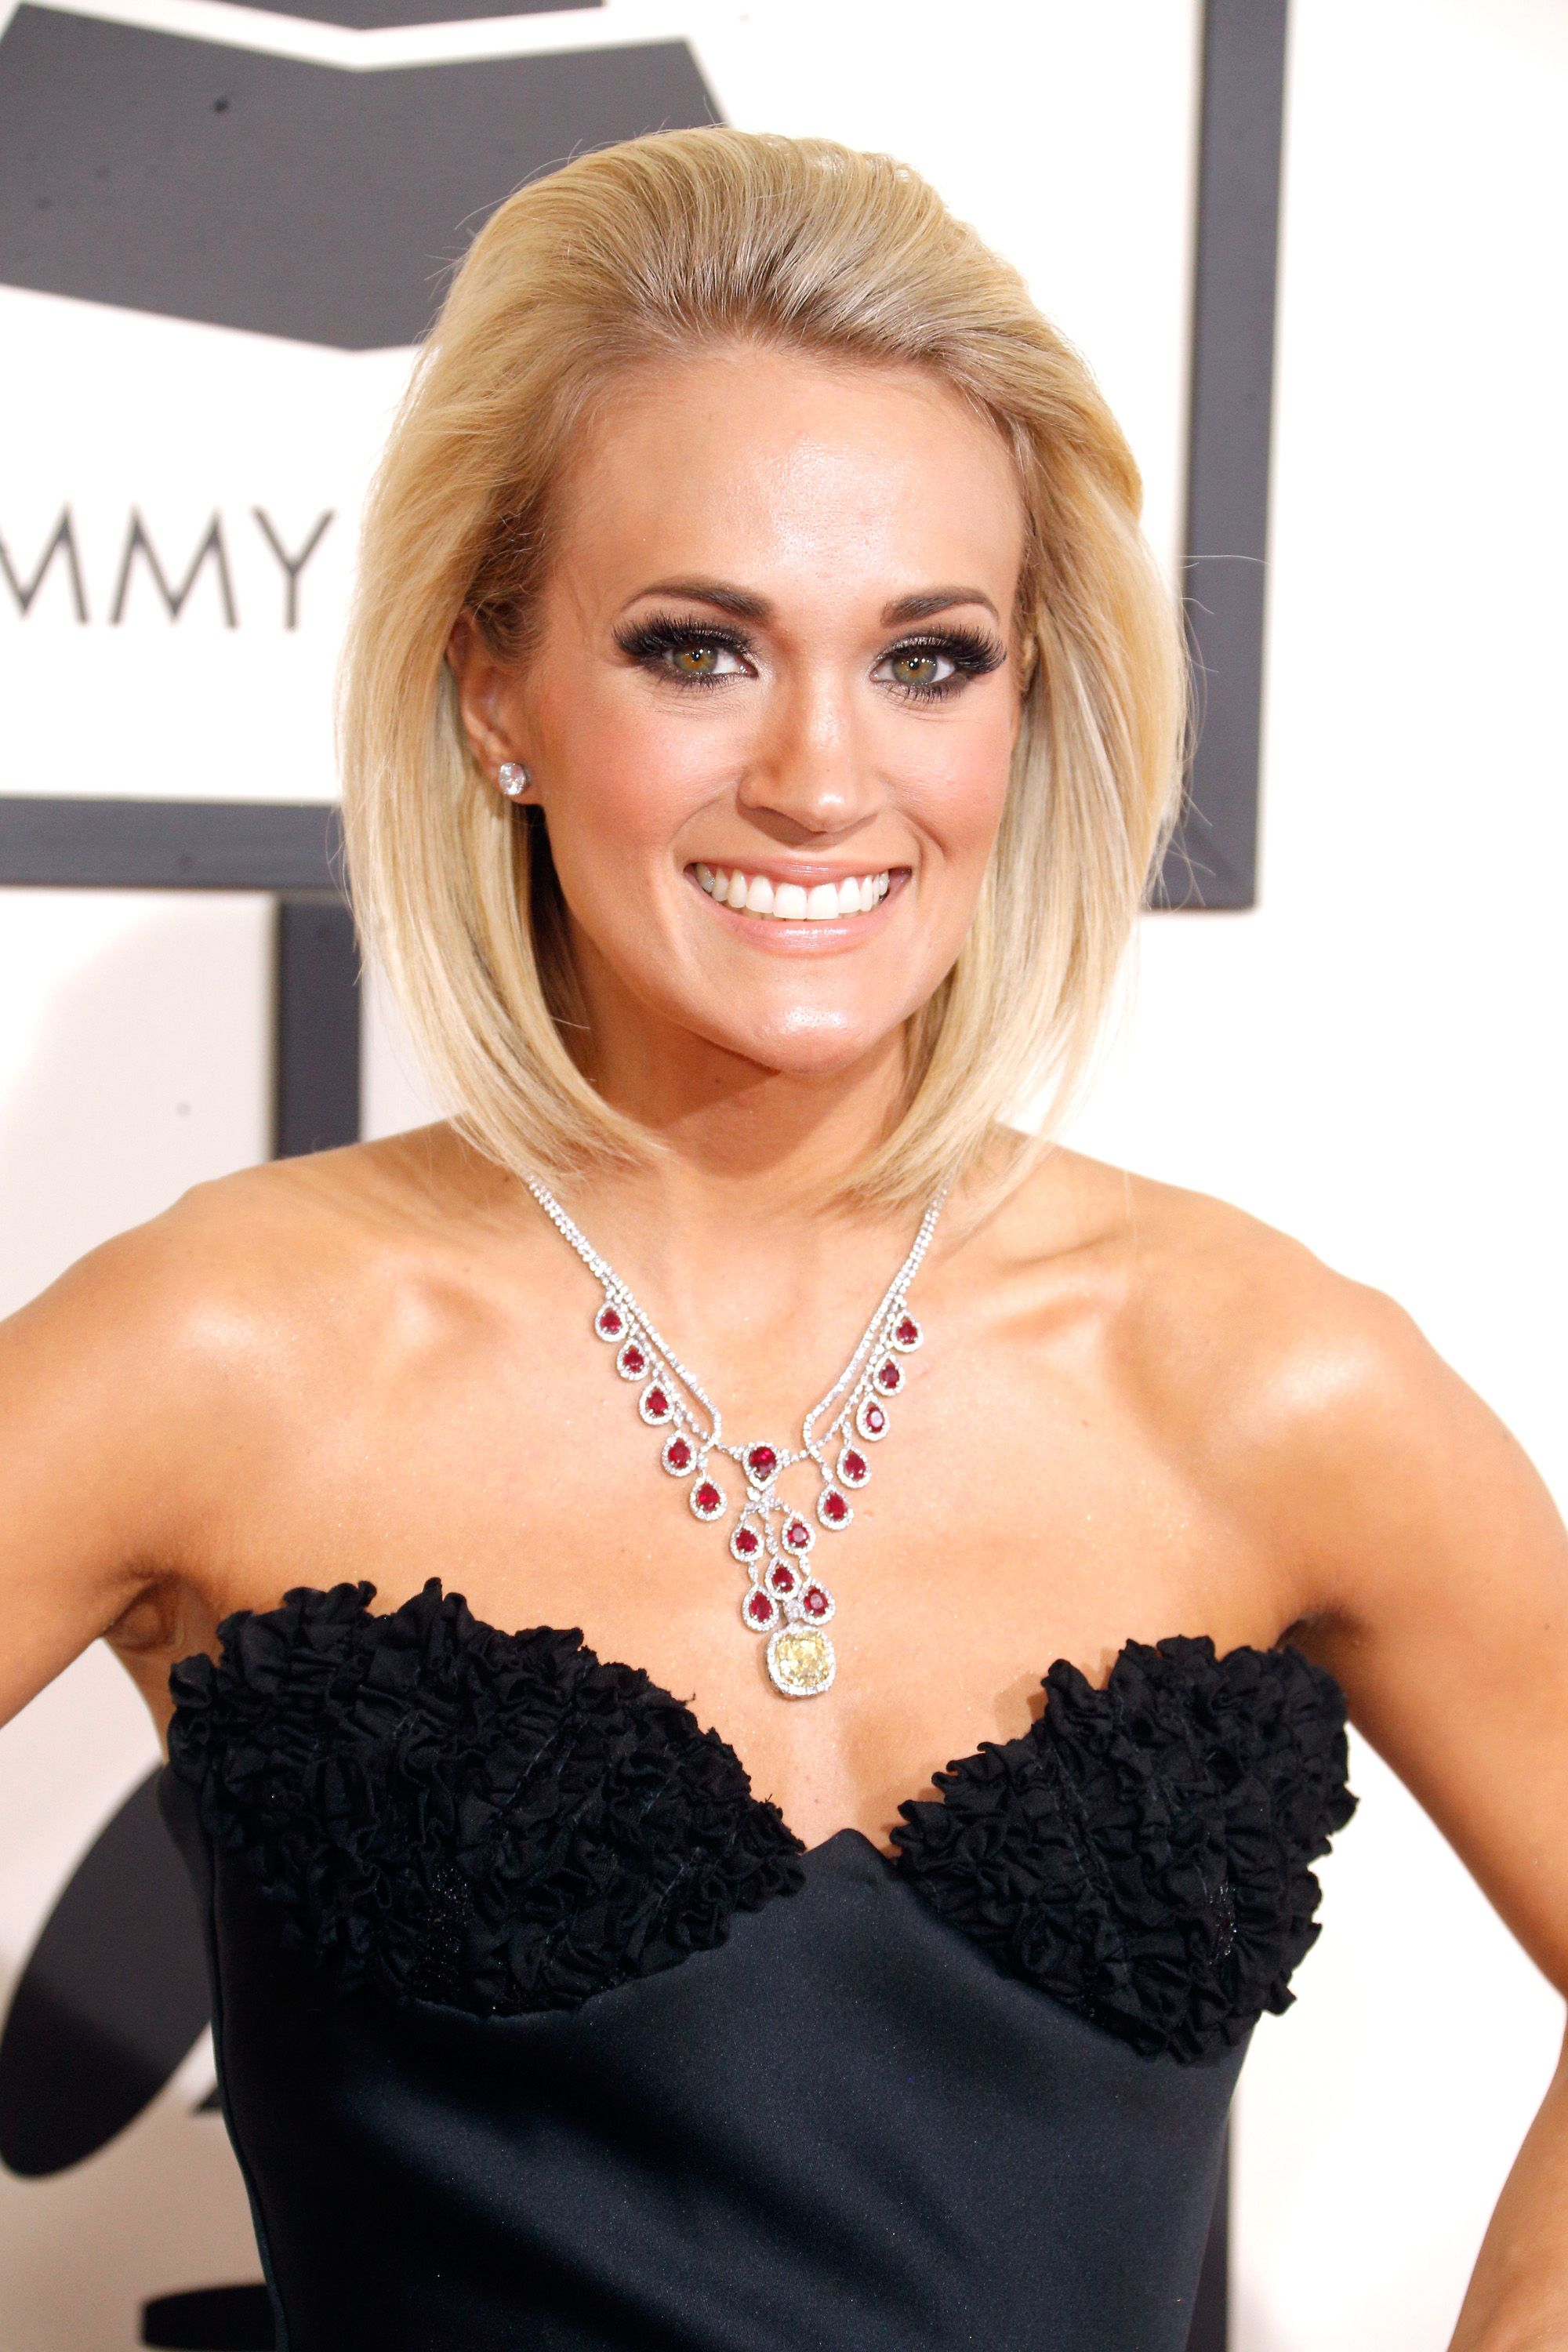 Carrie Underwood Gushes About Baby Son Isaiah At The Grammys